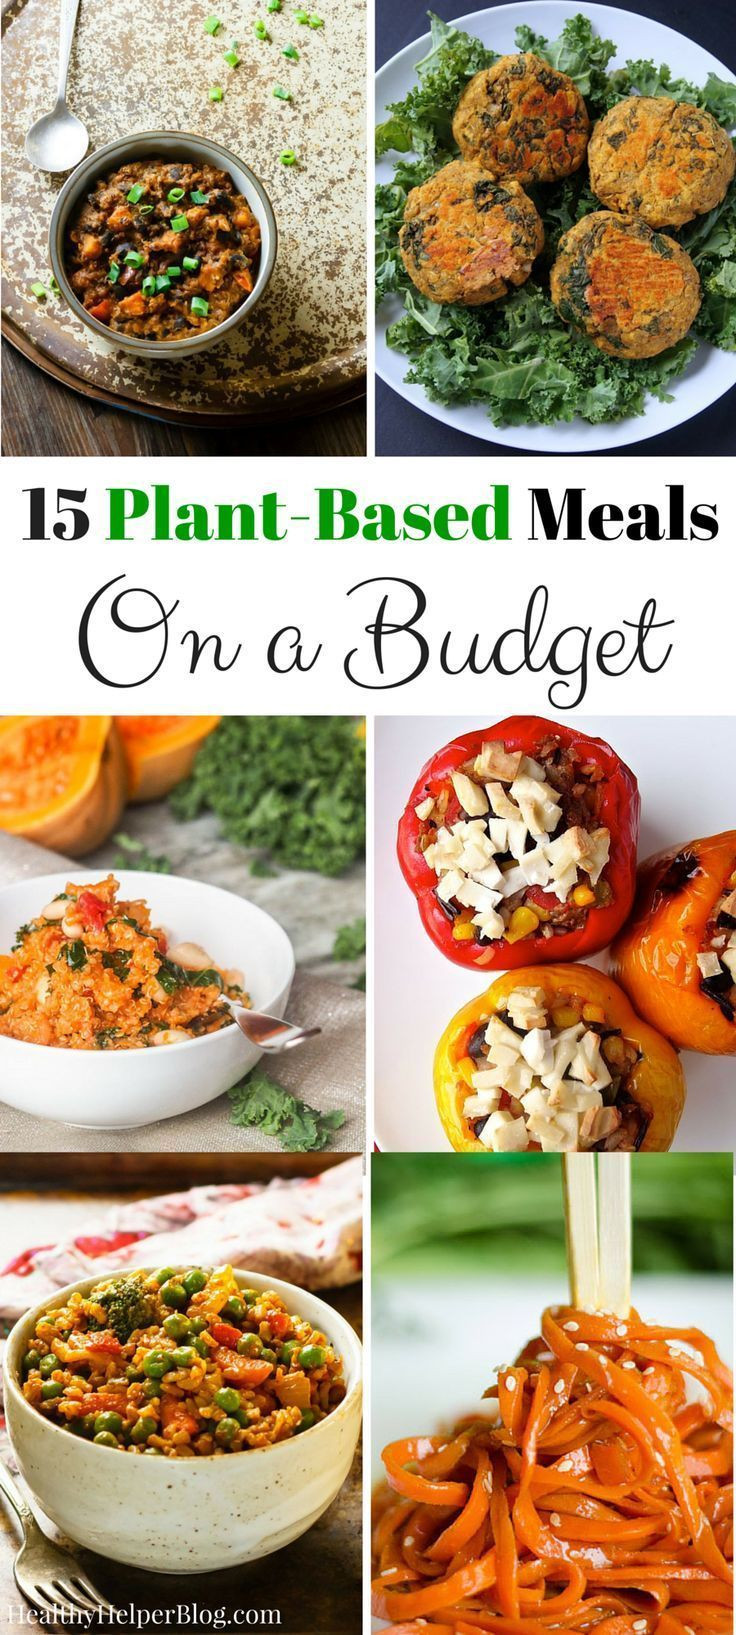 Vegetarian Recipes Cheap  228 best images about Eating Healthy on a Bud on